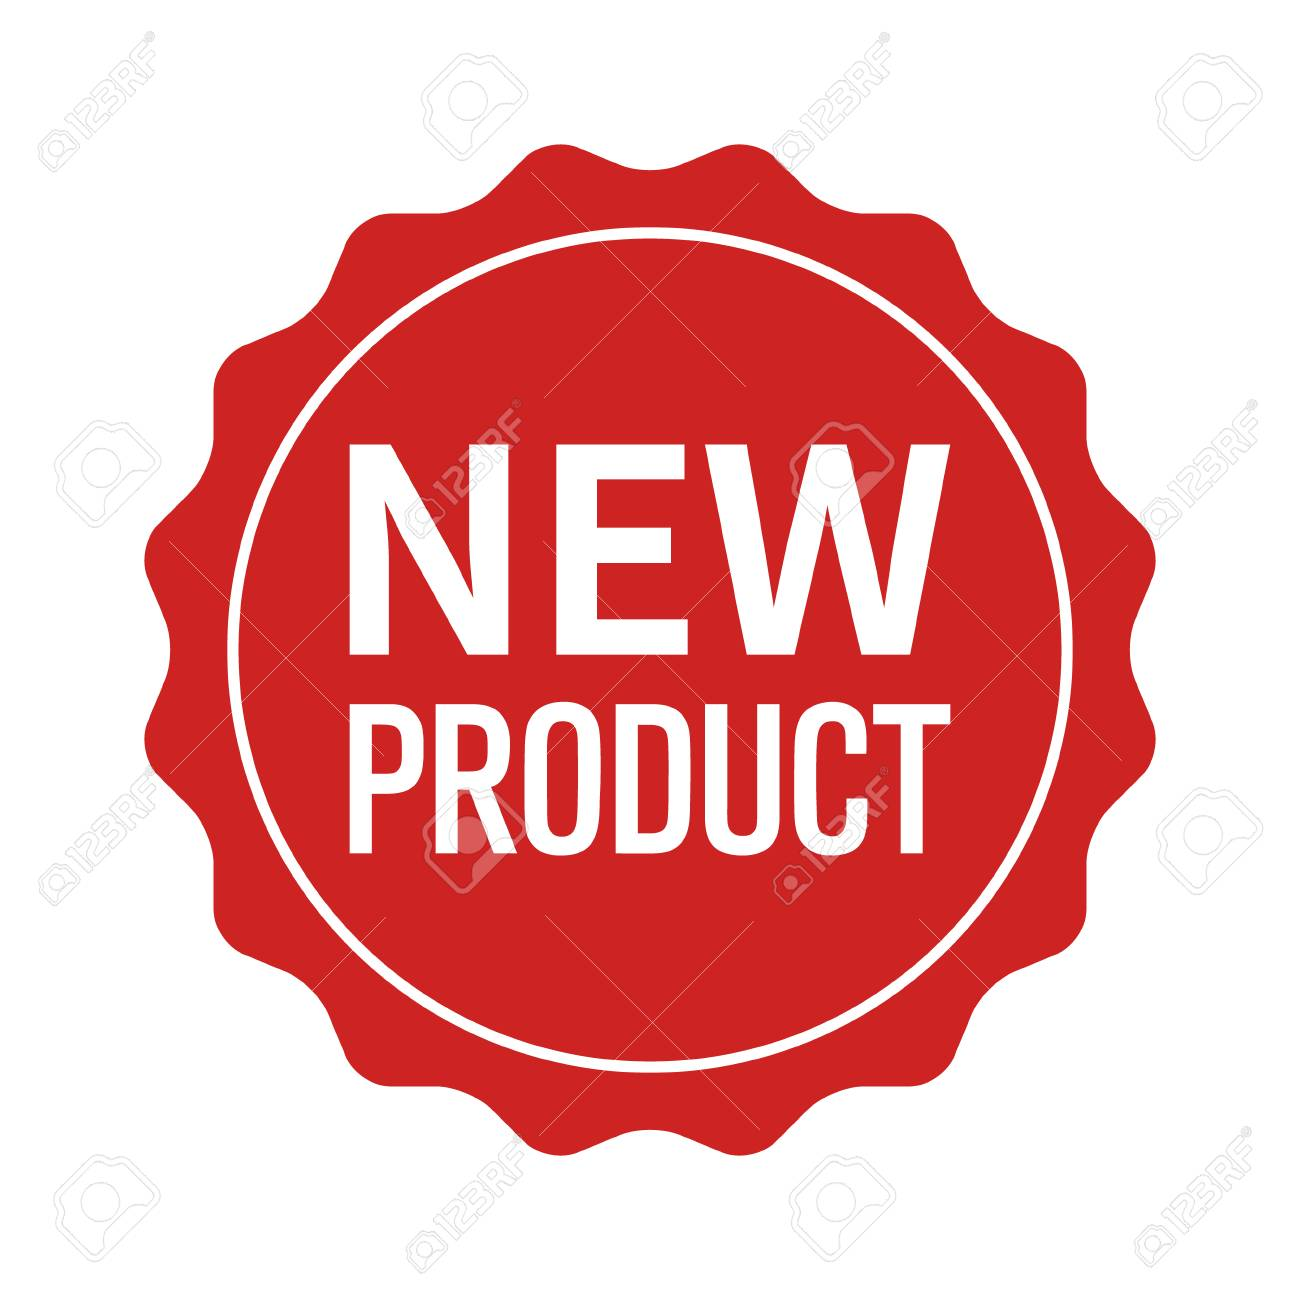 New product label, seal, sticker or burst flat vector icon for websites and packaging - 84587578